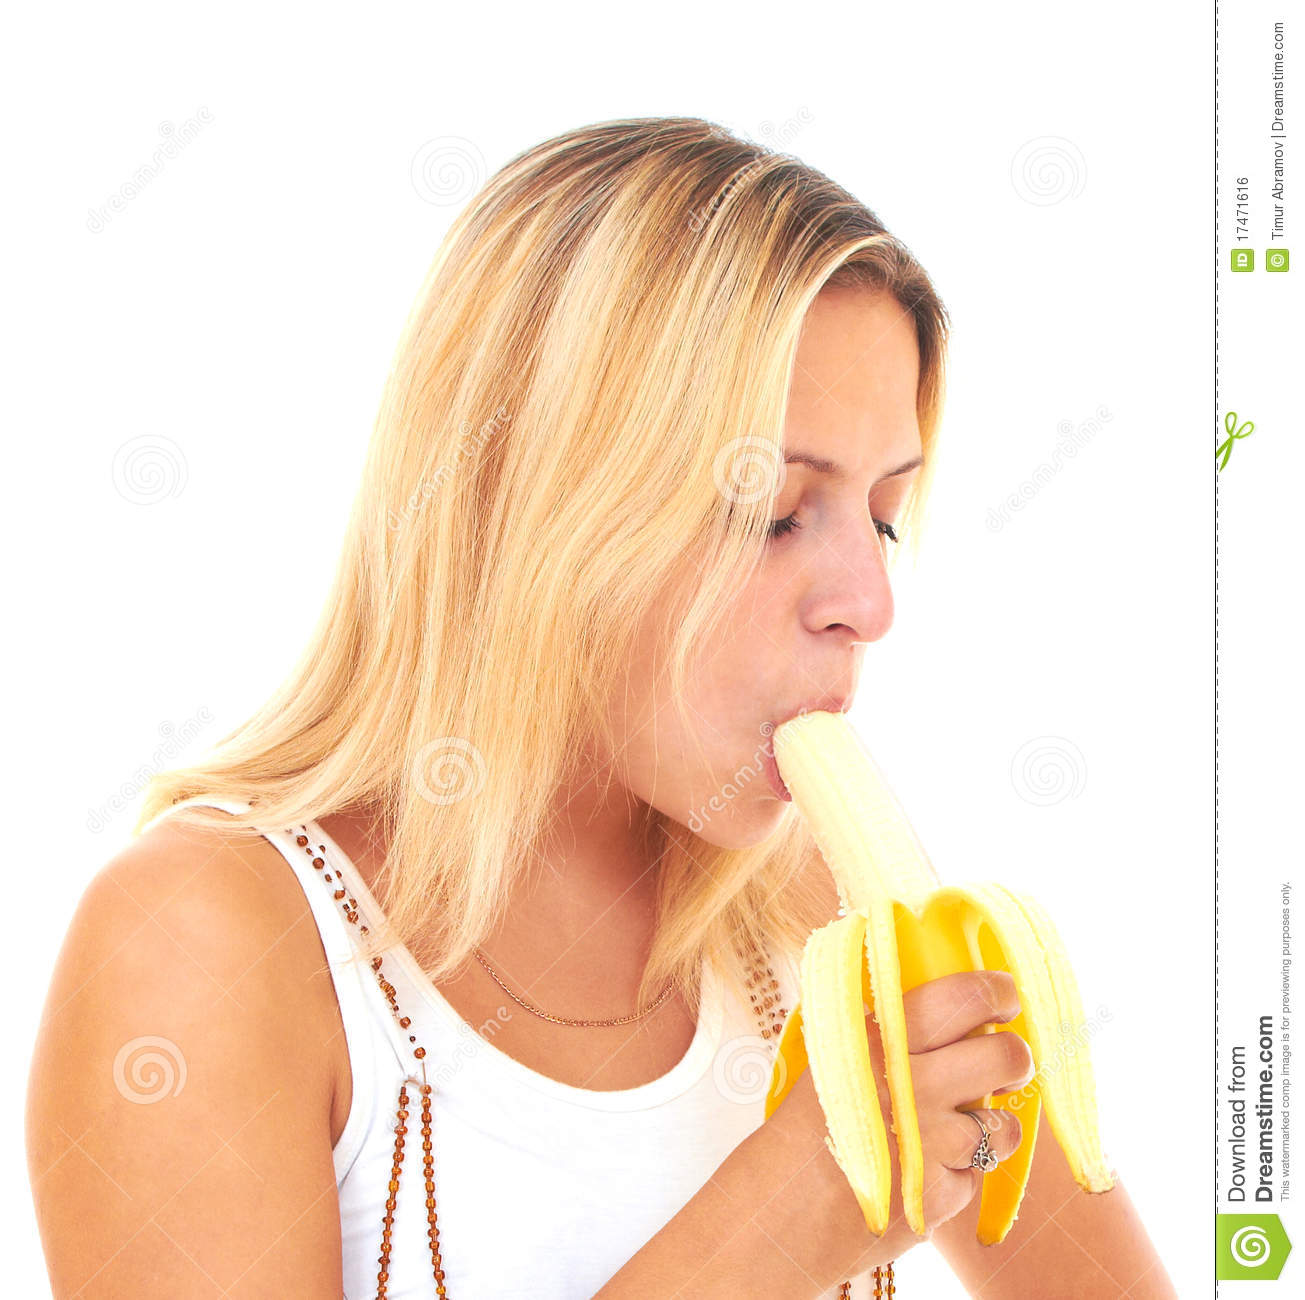 Sexy blonde eating banana